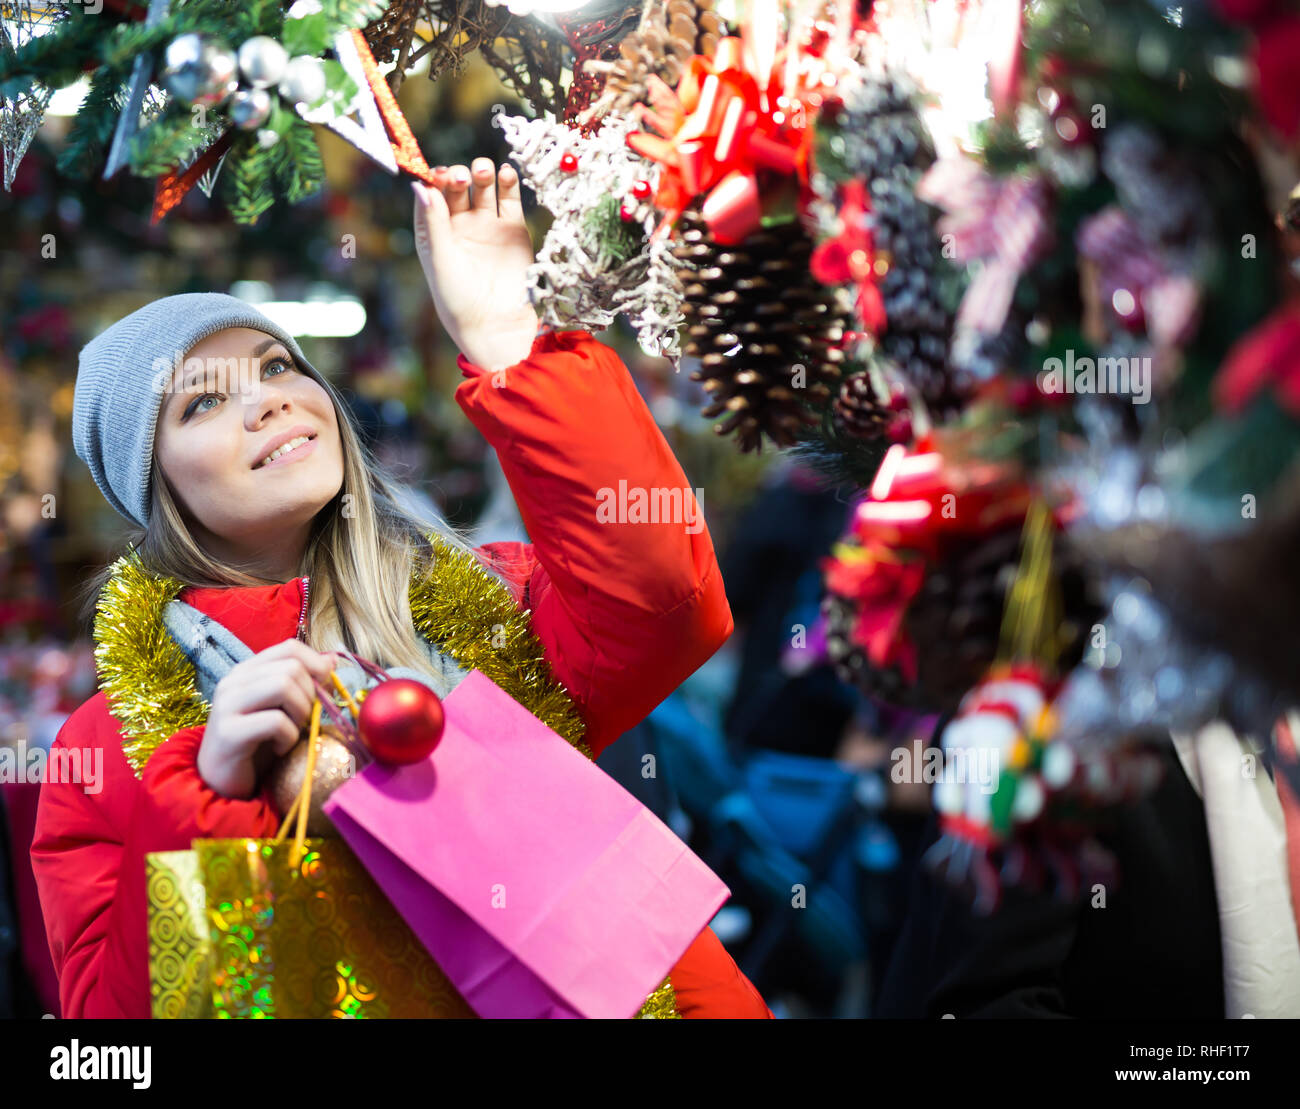 Positive Female With Handmade Christmas Gifts On The Street Market